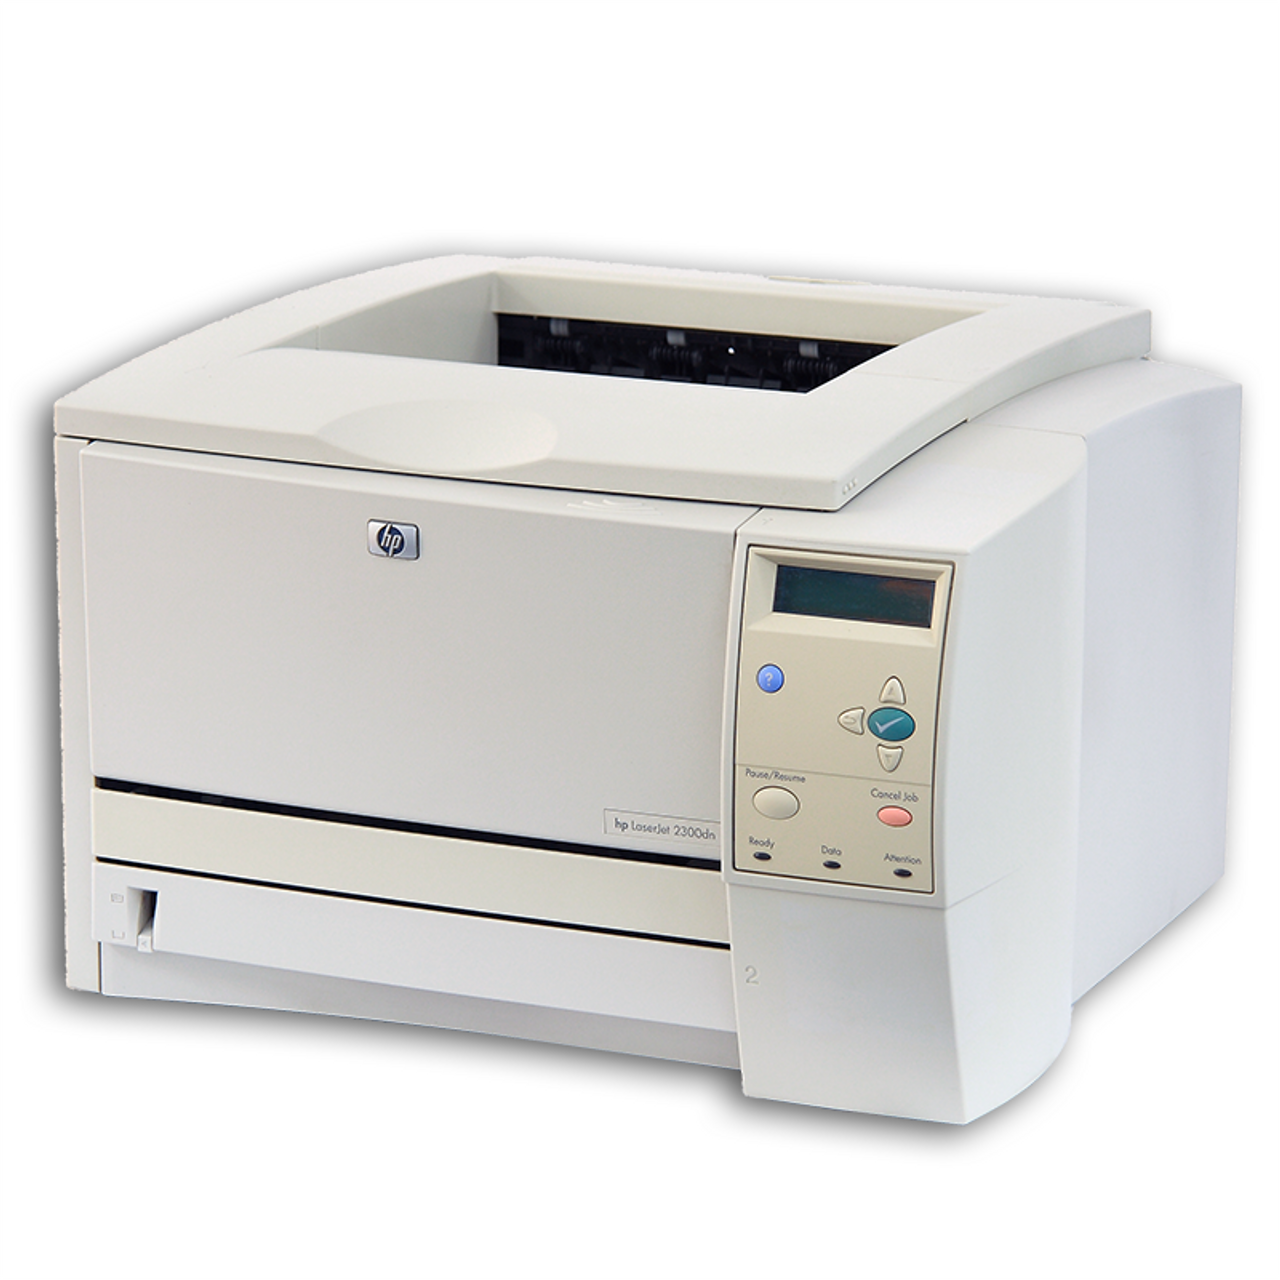 HP LaserJet 2300d - Q2474a - Laser Printer